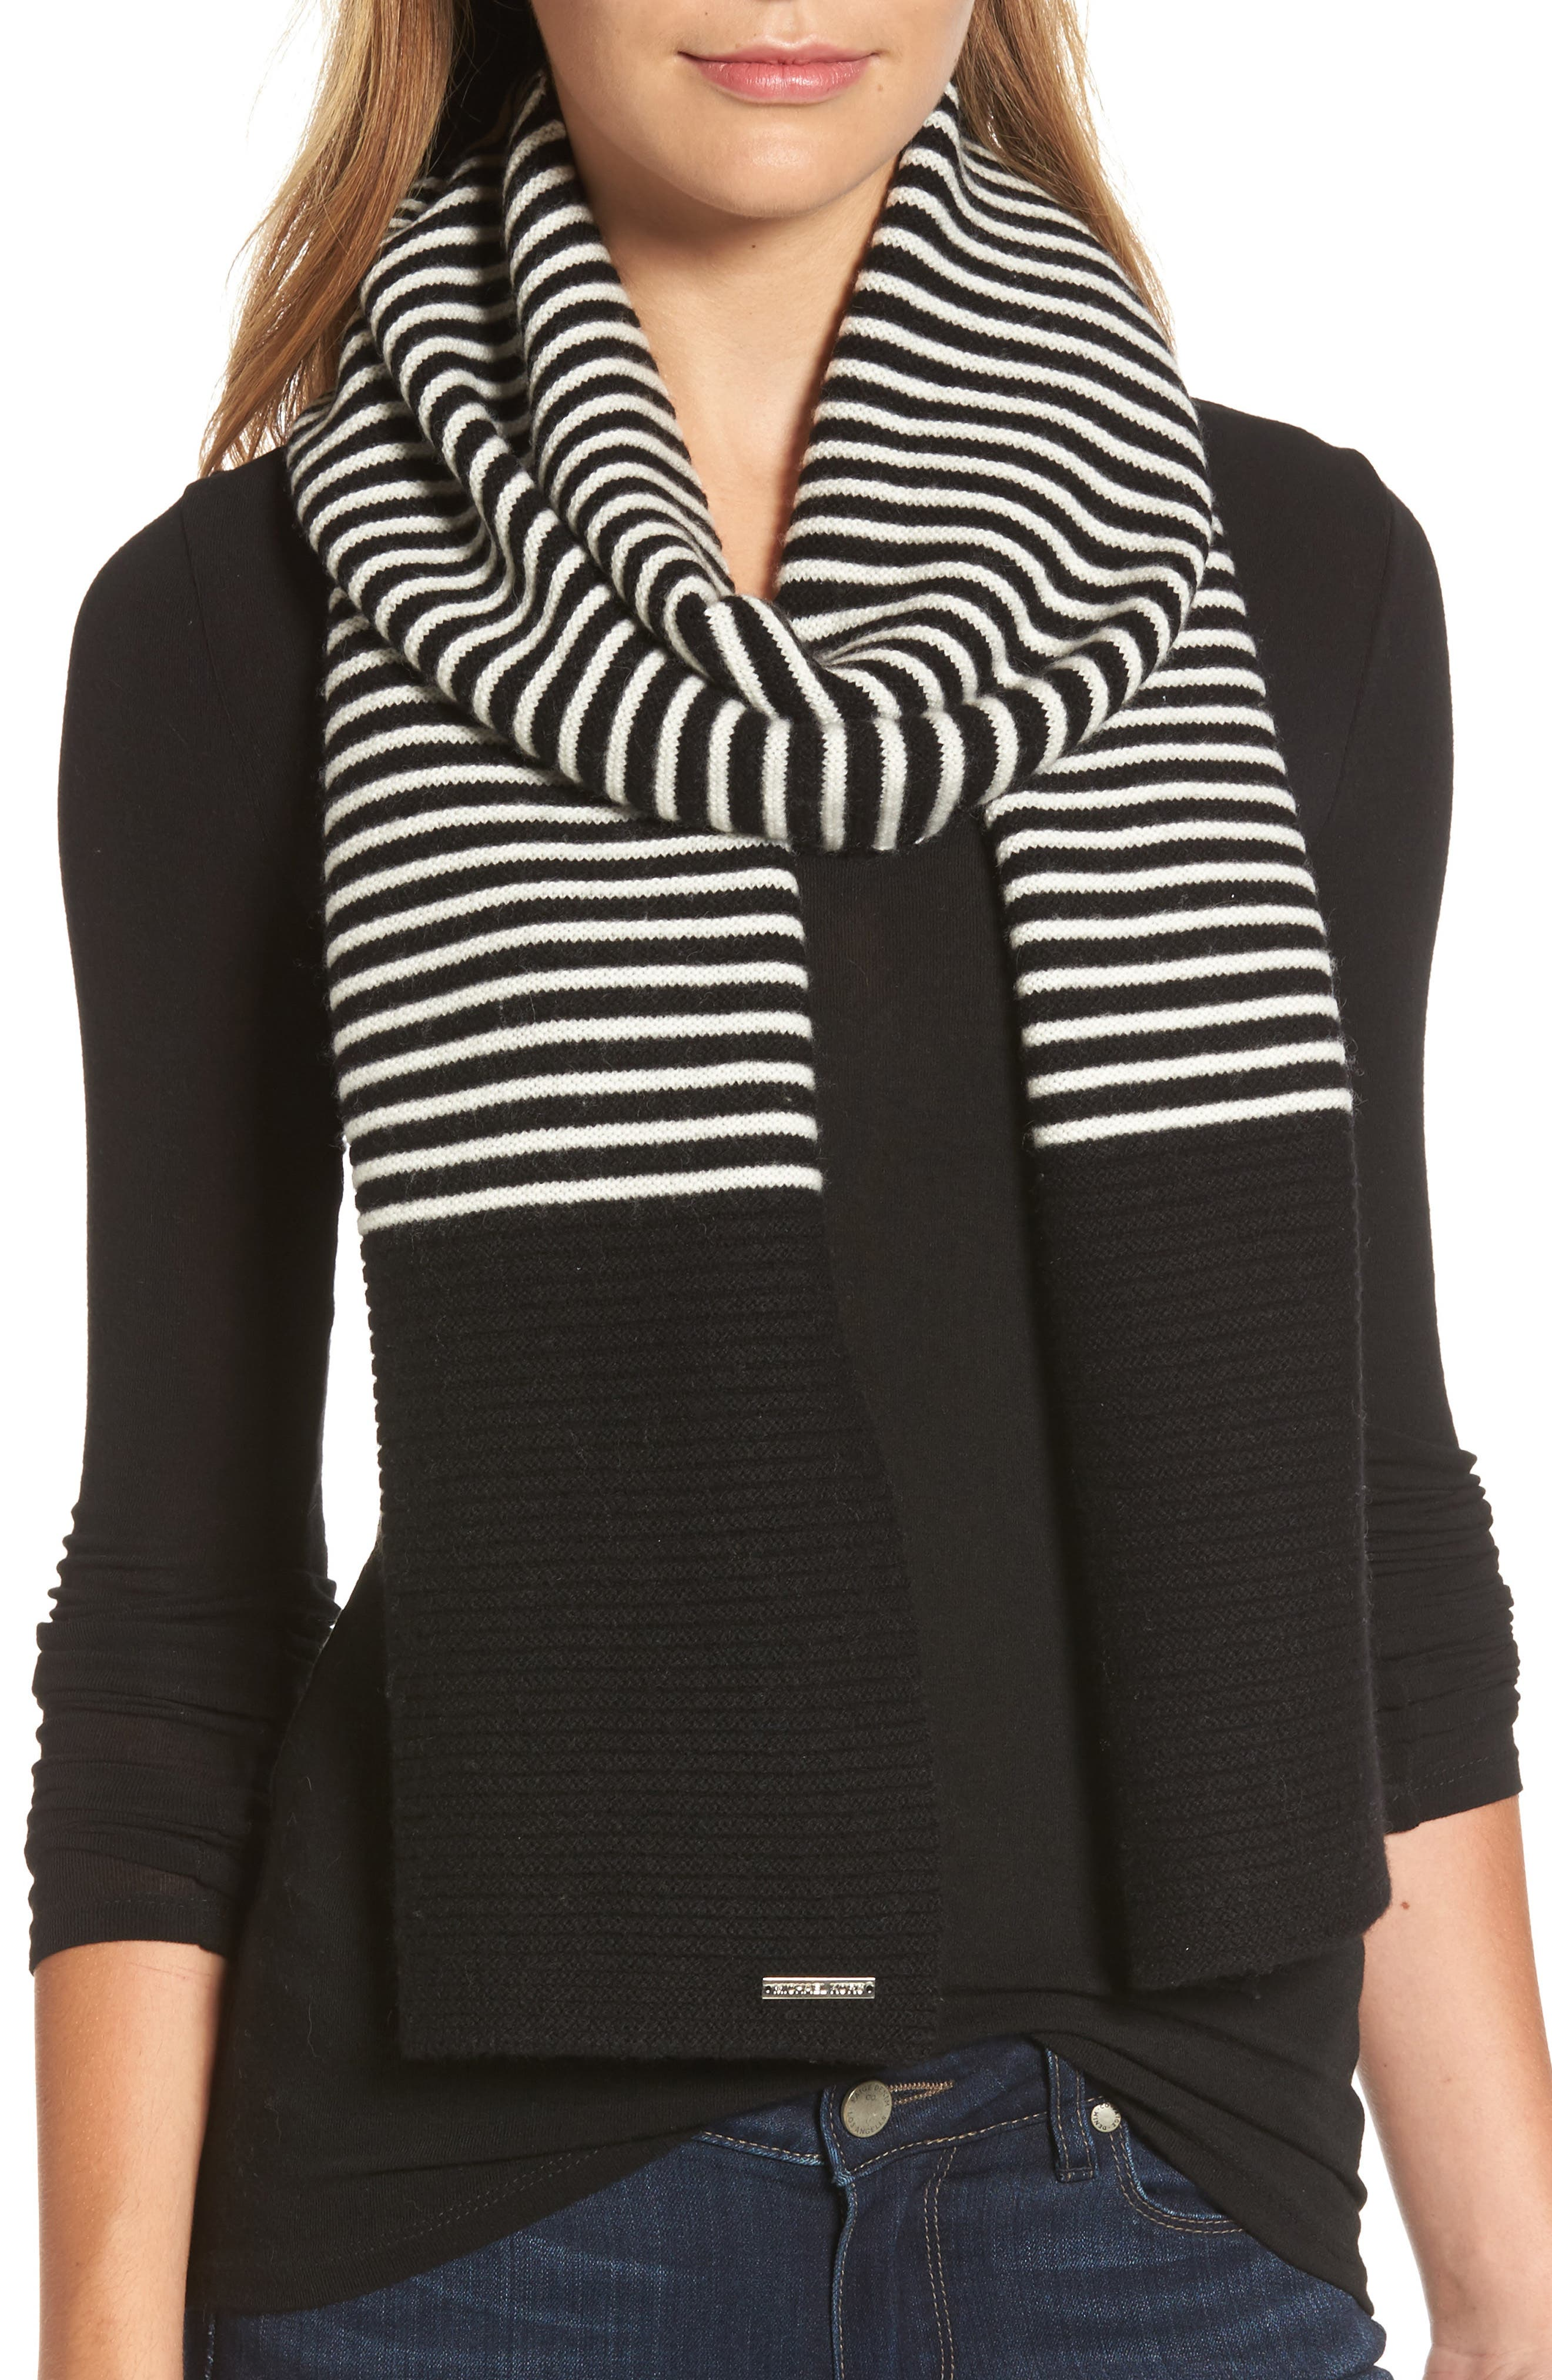 Double Links Wool & Cashmere Scarf,                             Main thumbnail 1, color,                             001